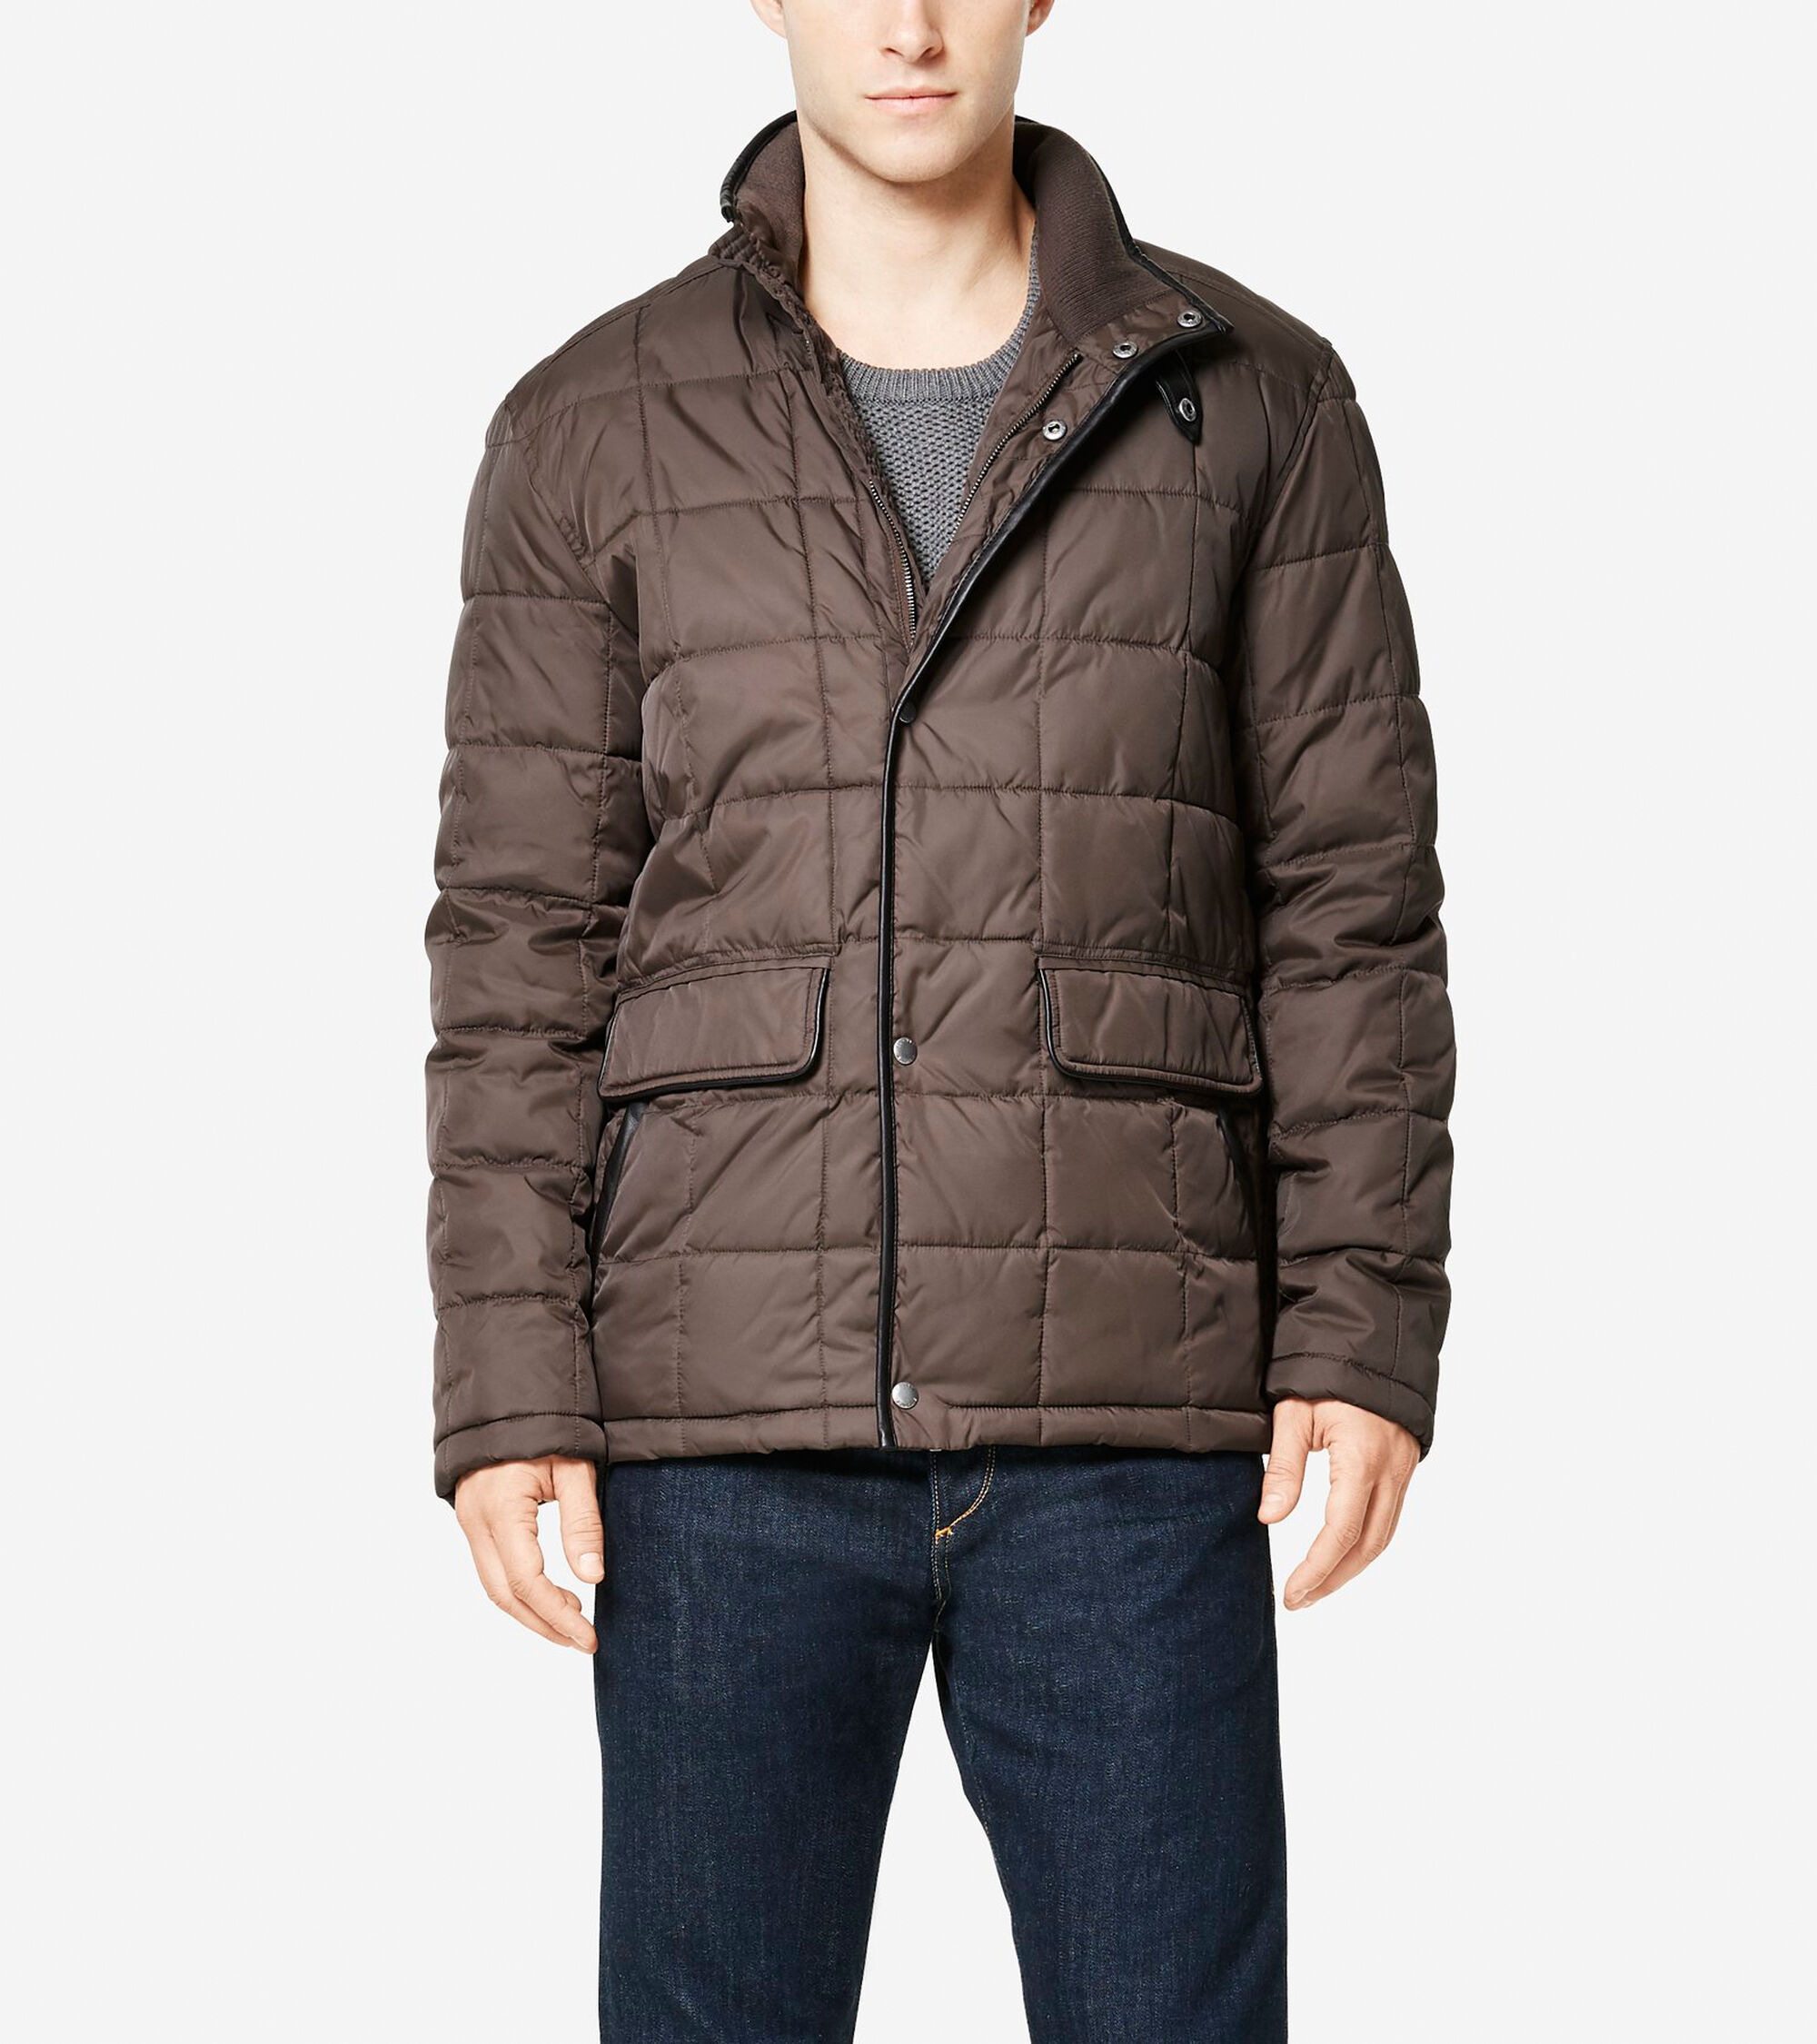 lyst jacket product polo ralph quilt black quilted lauren richmond for in mens men gallery clothing